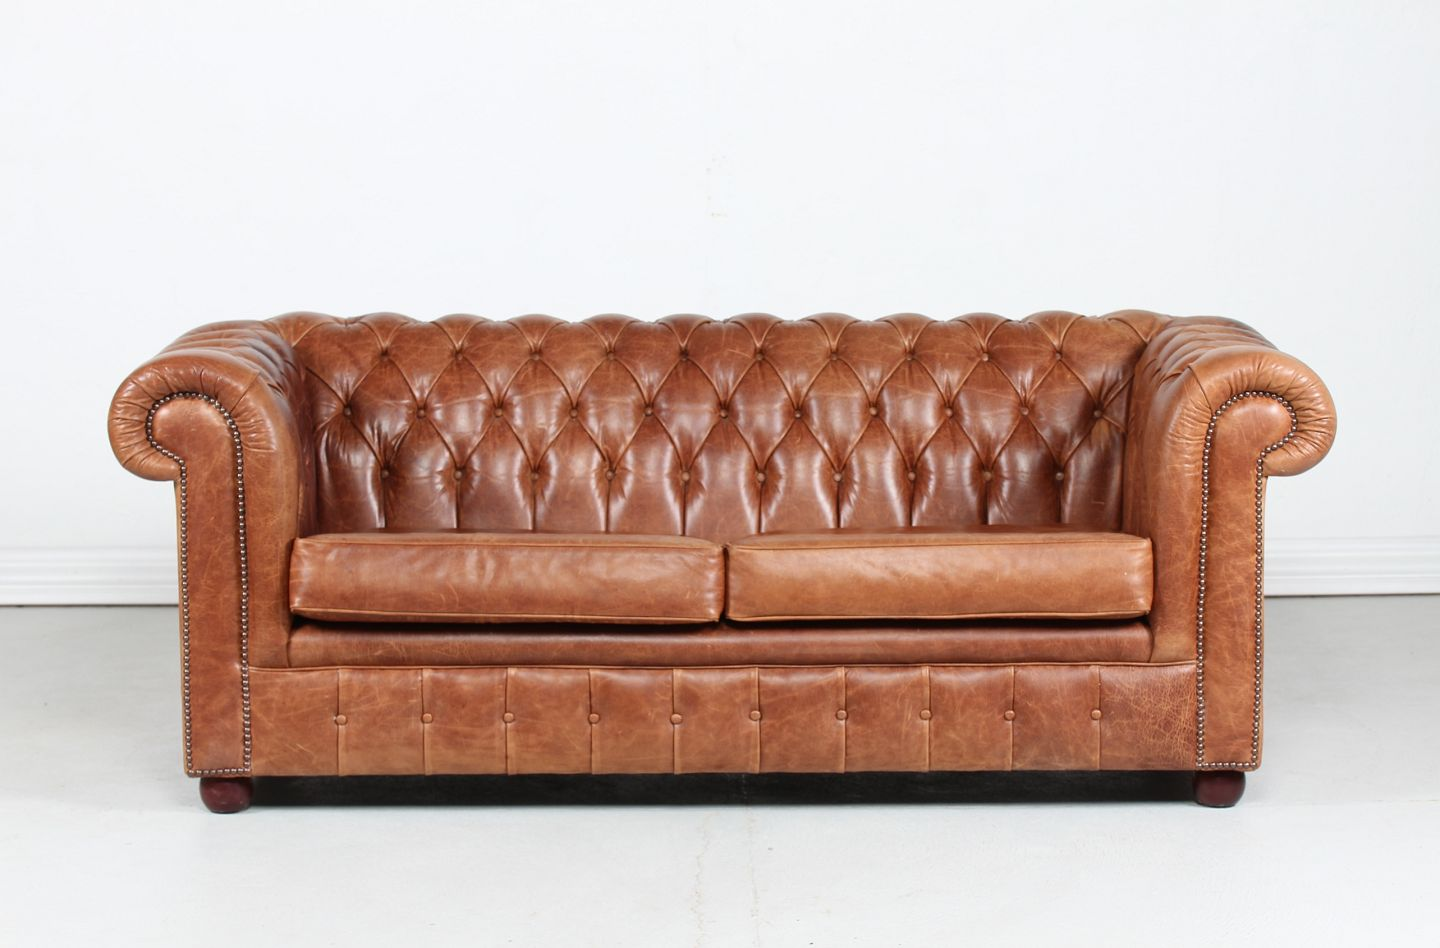 Stari Antik Chesterfield Sofa With Brown Leather Chesterfield Sofa With Brown Leather